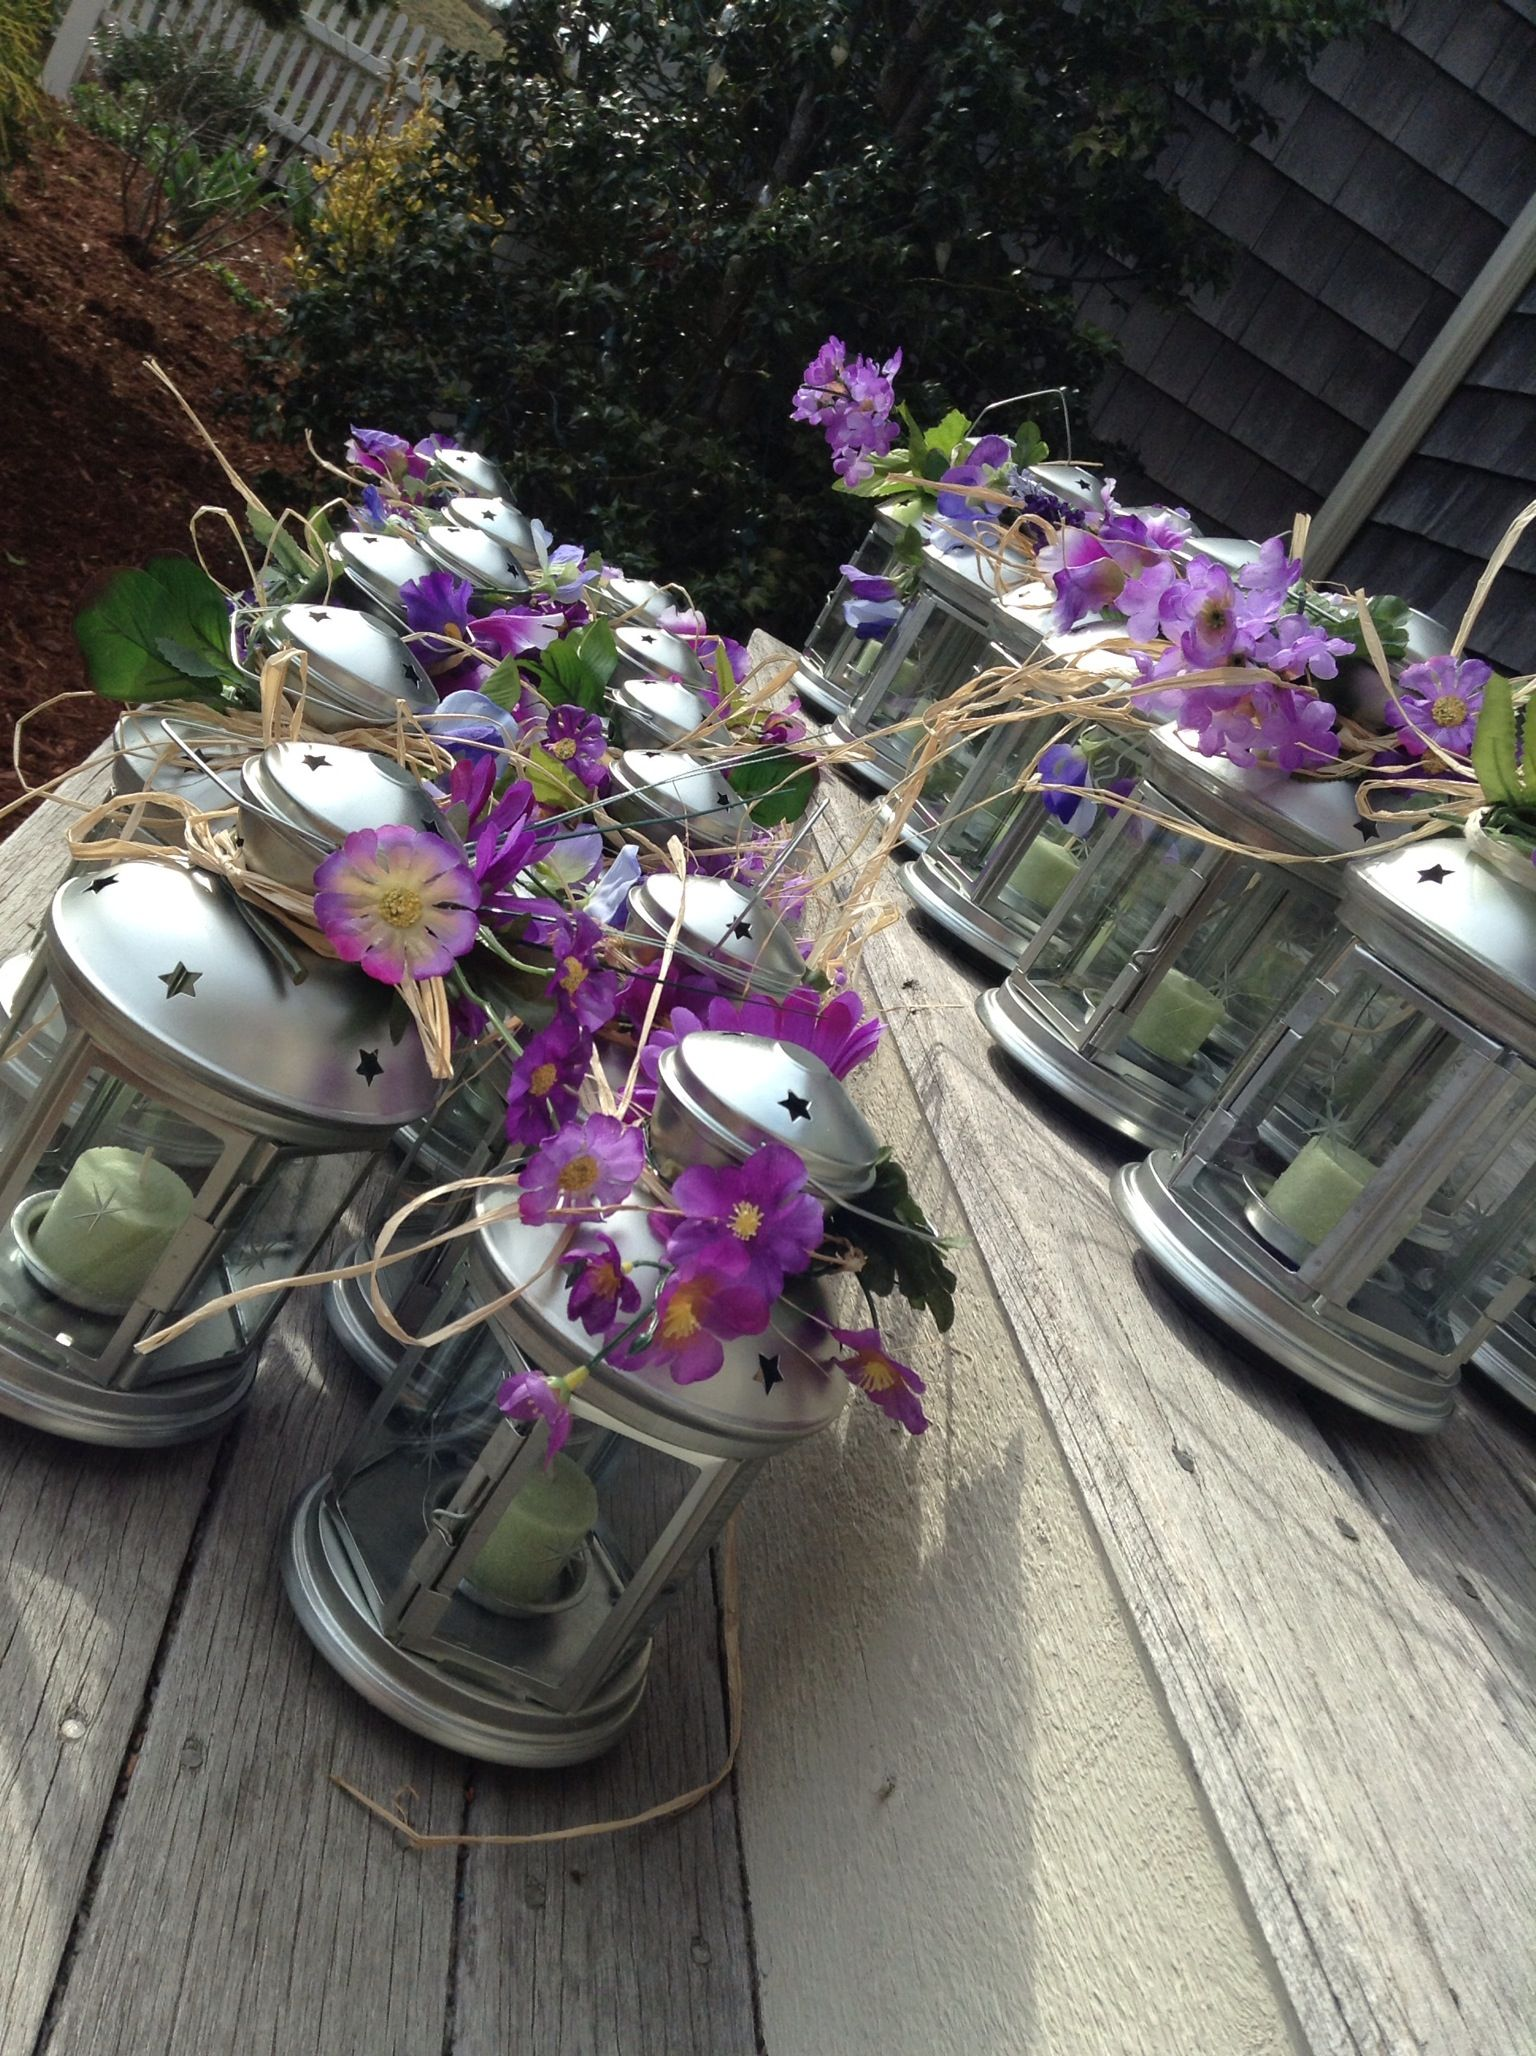 Ikea lanterns purple flowers twine this is one of the